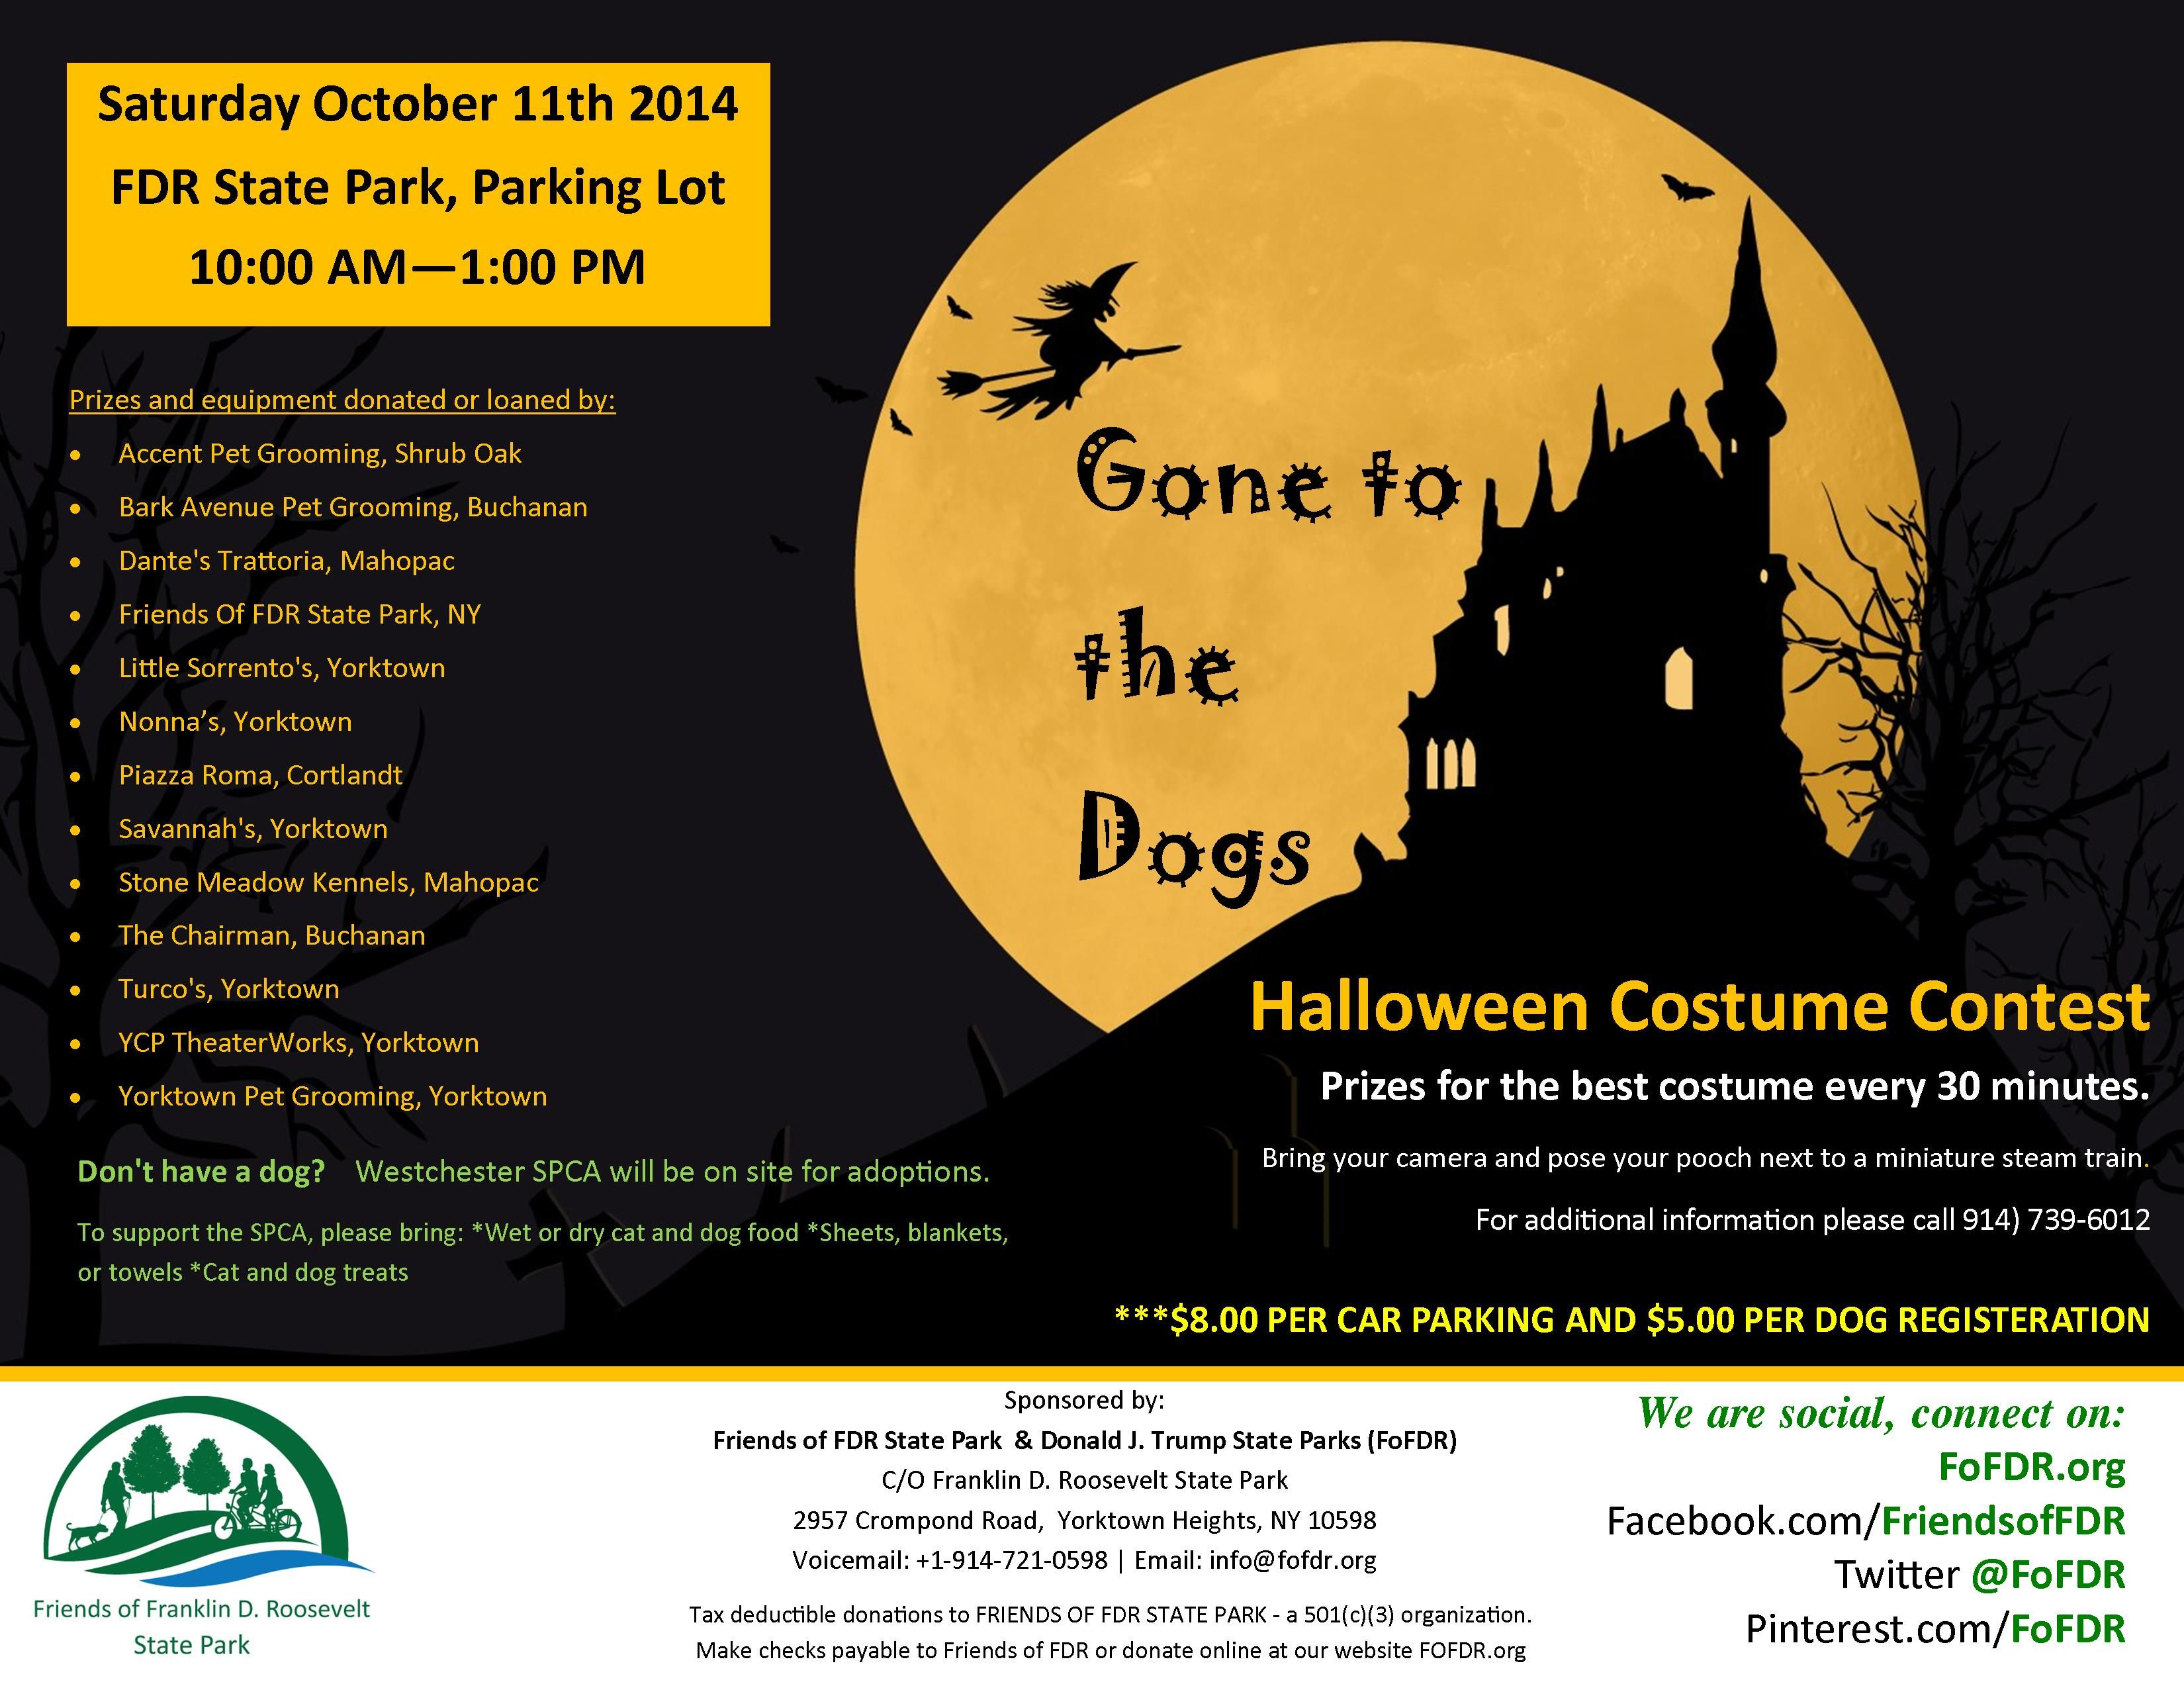 Gone to the Dogs 2014 - Halloween Costume Contest at the FDR State Park Lot# 4 on October 11, 2014 10 AM-1 PM